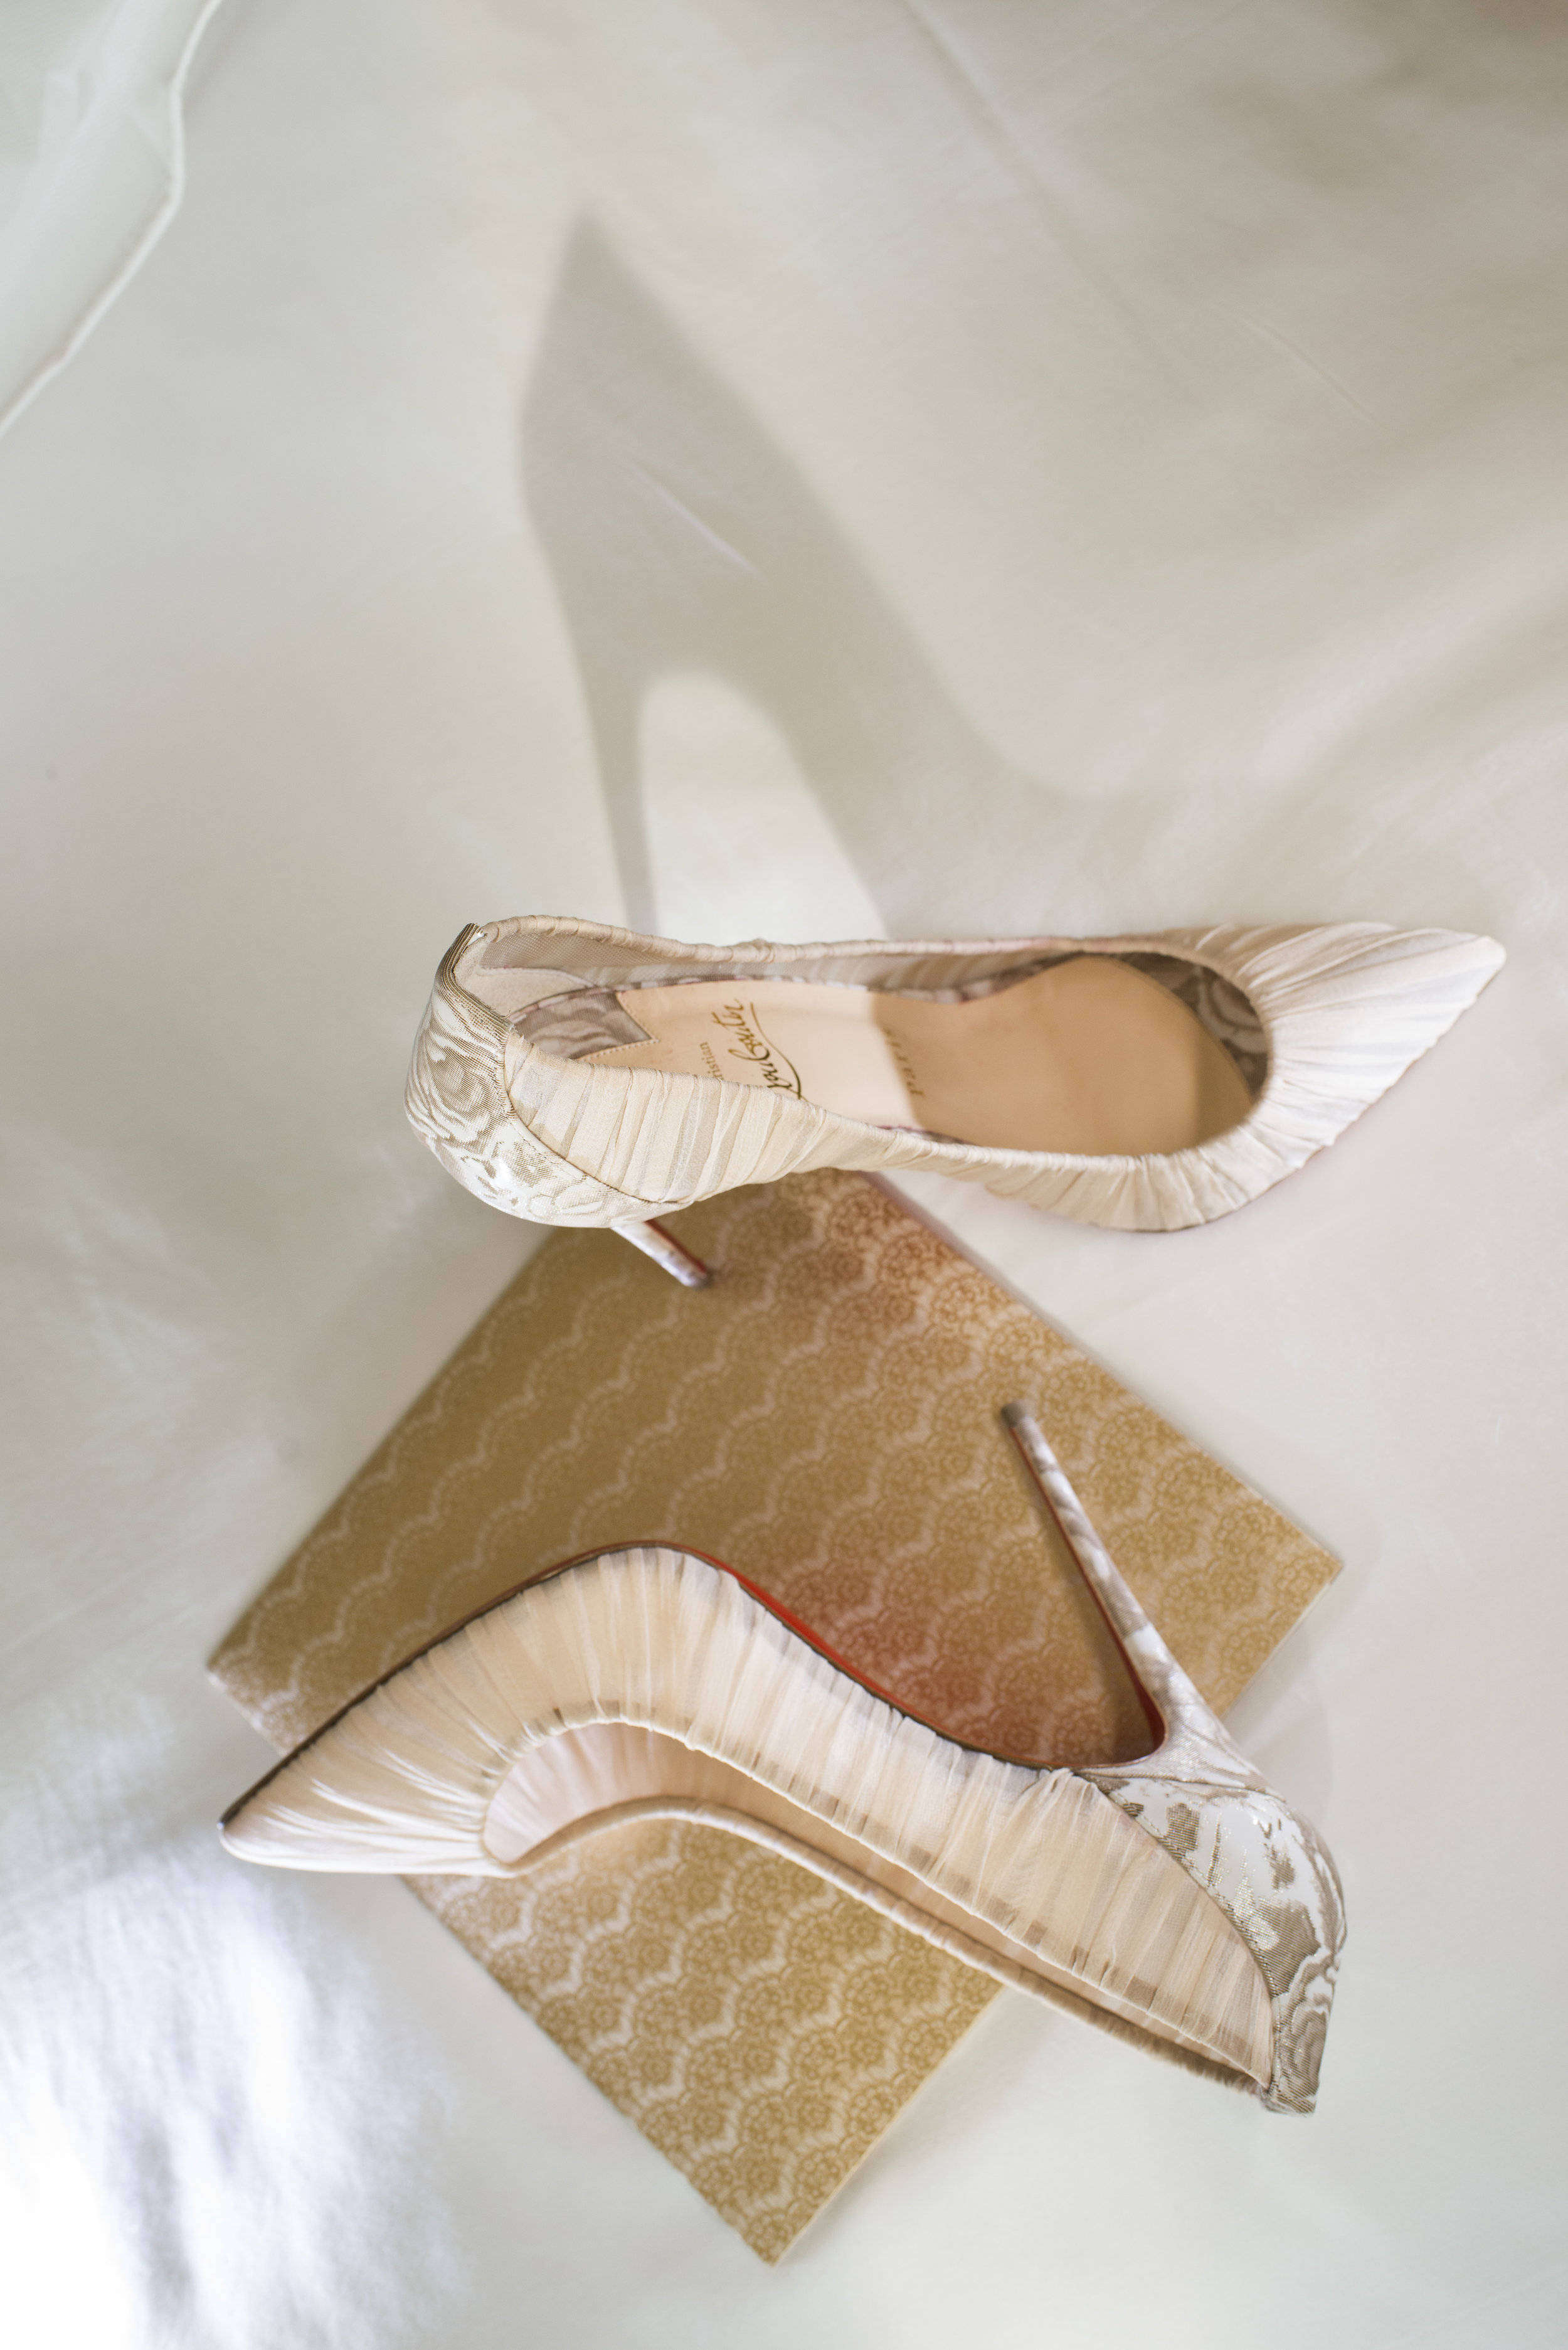 Lovely Loubies. Rose printed Christian Louboutins. http://www.earth13.com/weddings/aaron-and-jennifer/